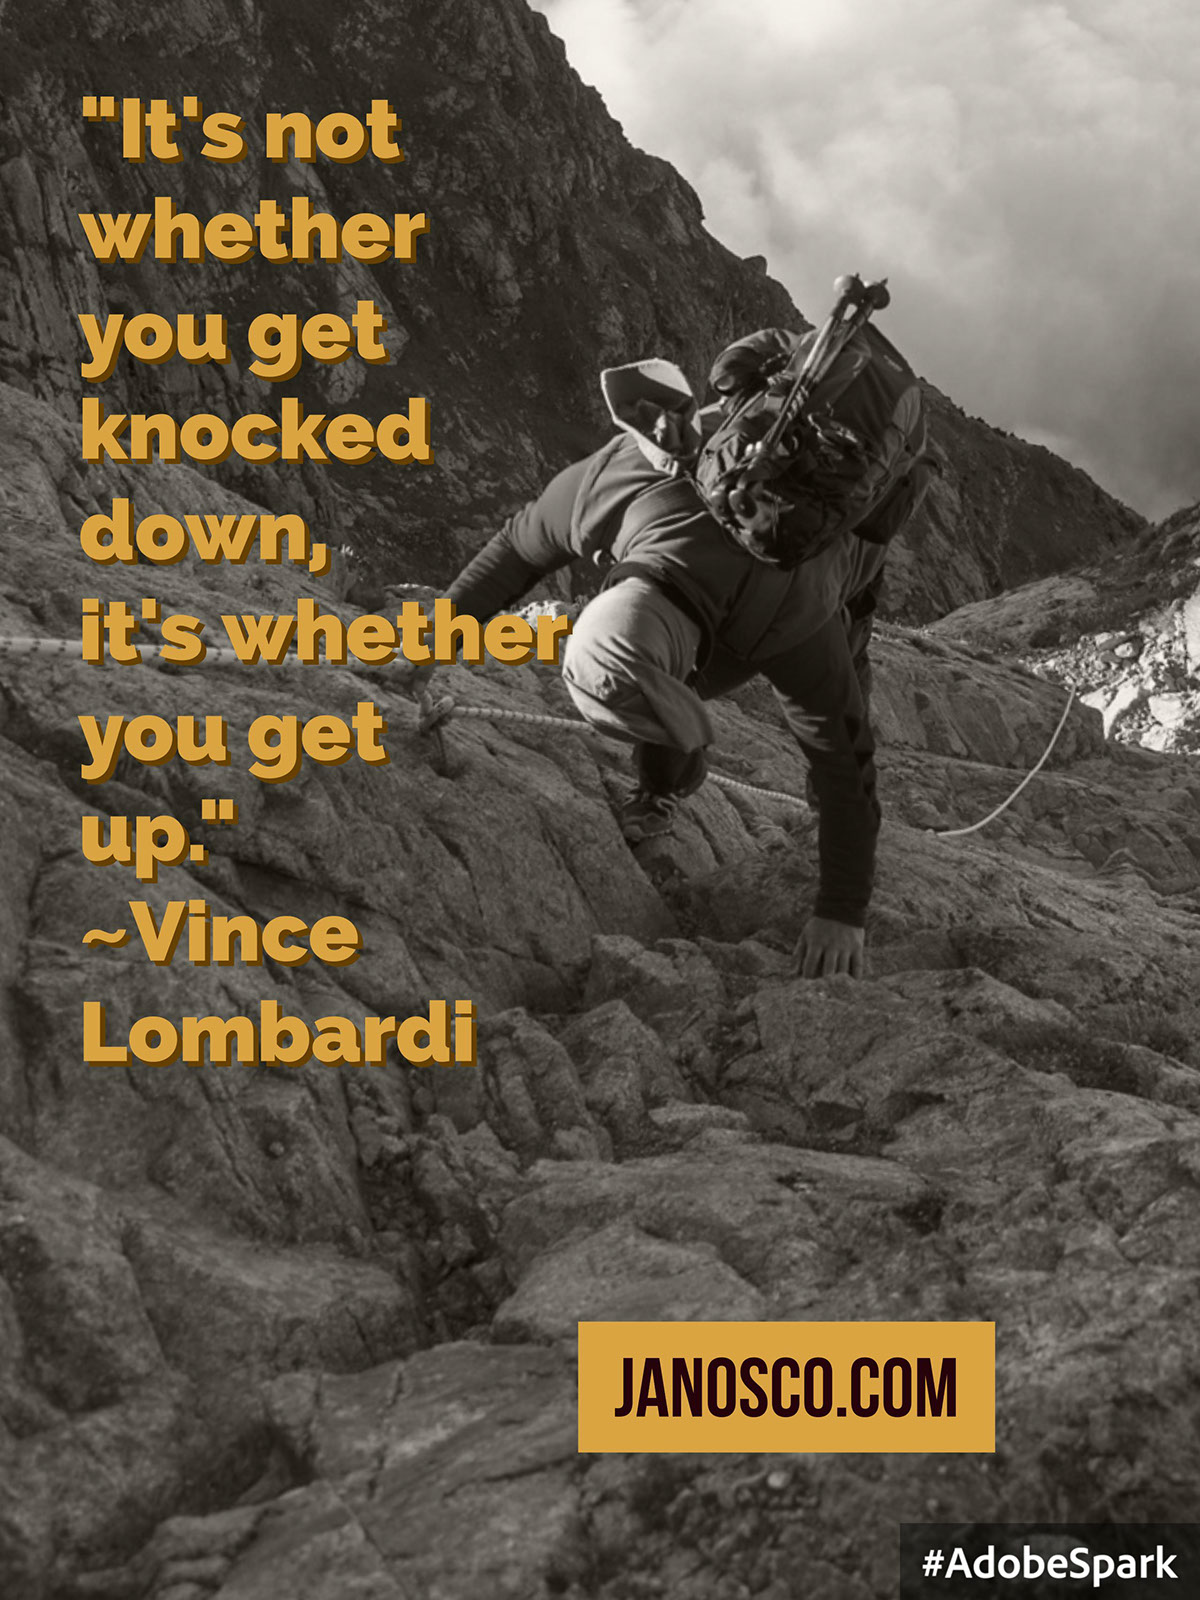 """It's not whether you get knocked down, it's whether you get up.""~Vince Lombardi"